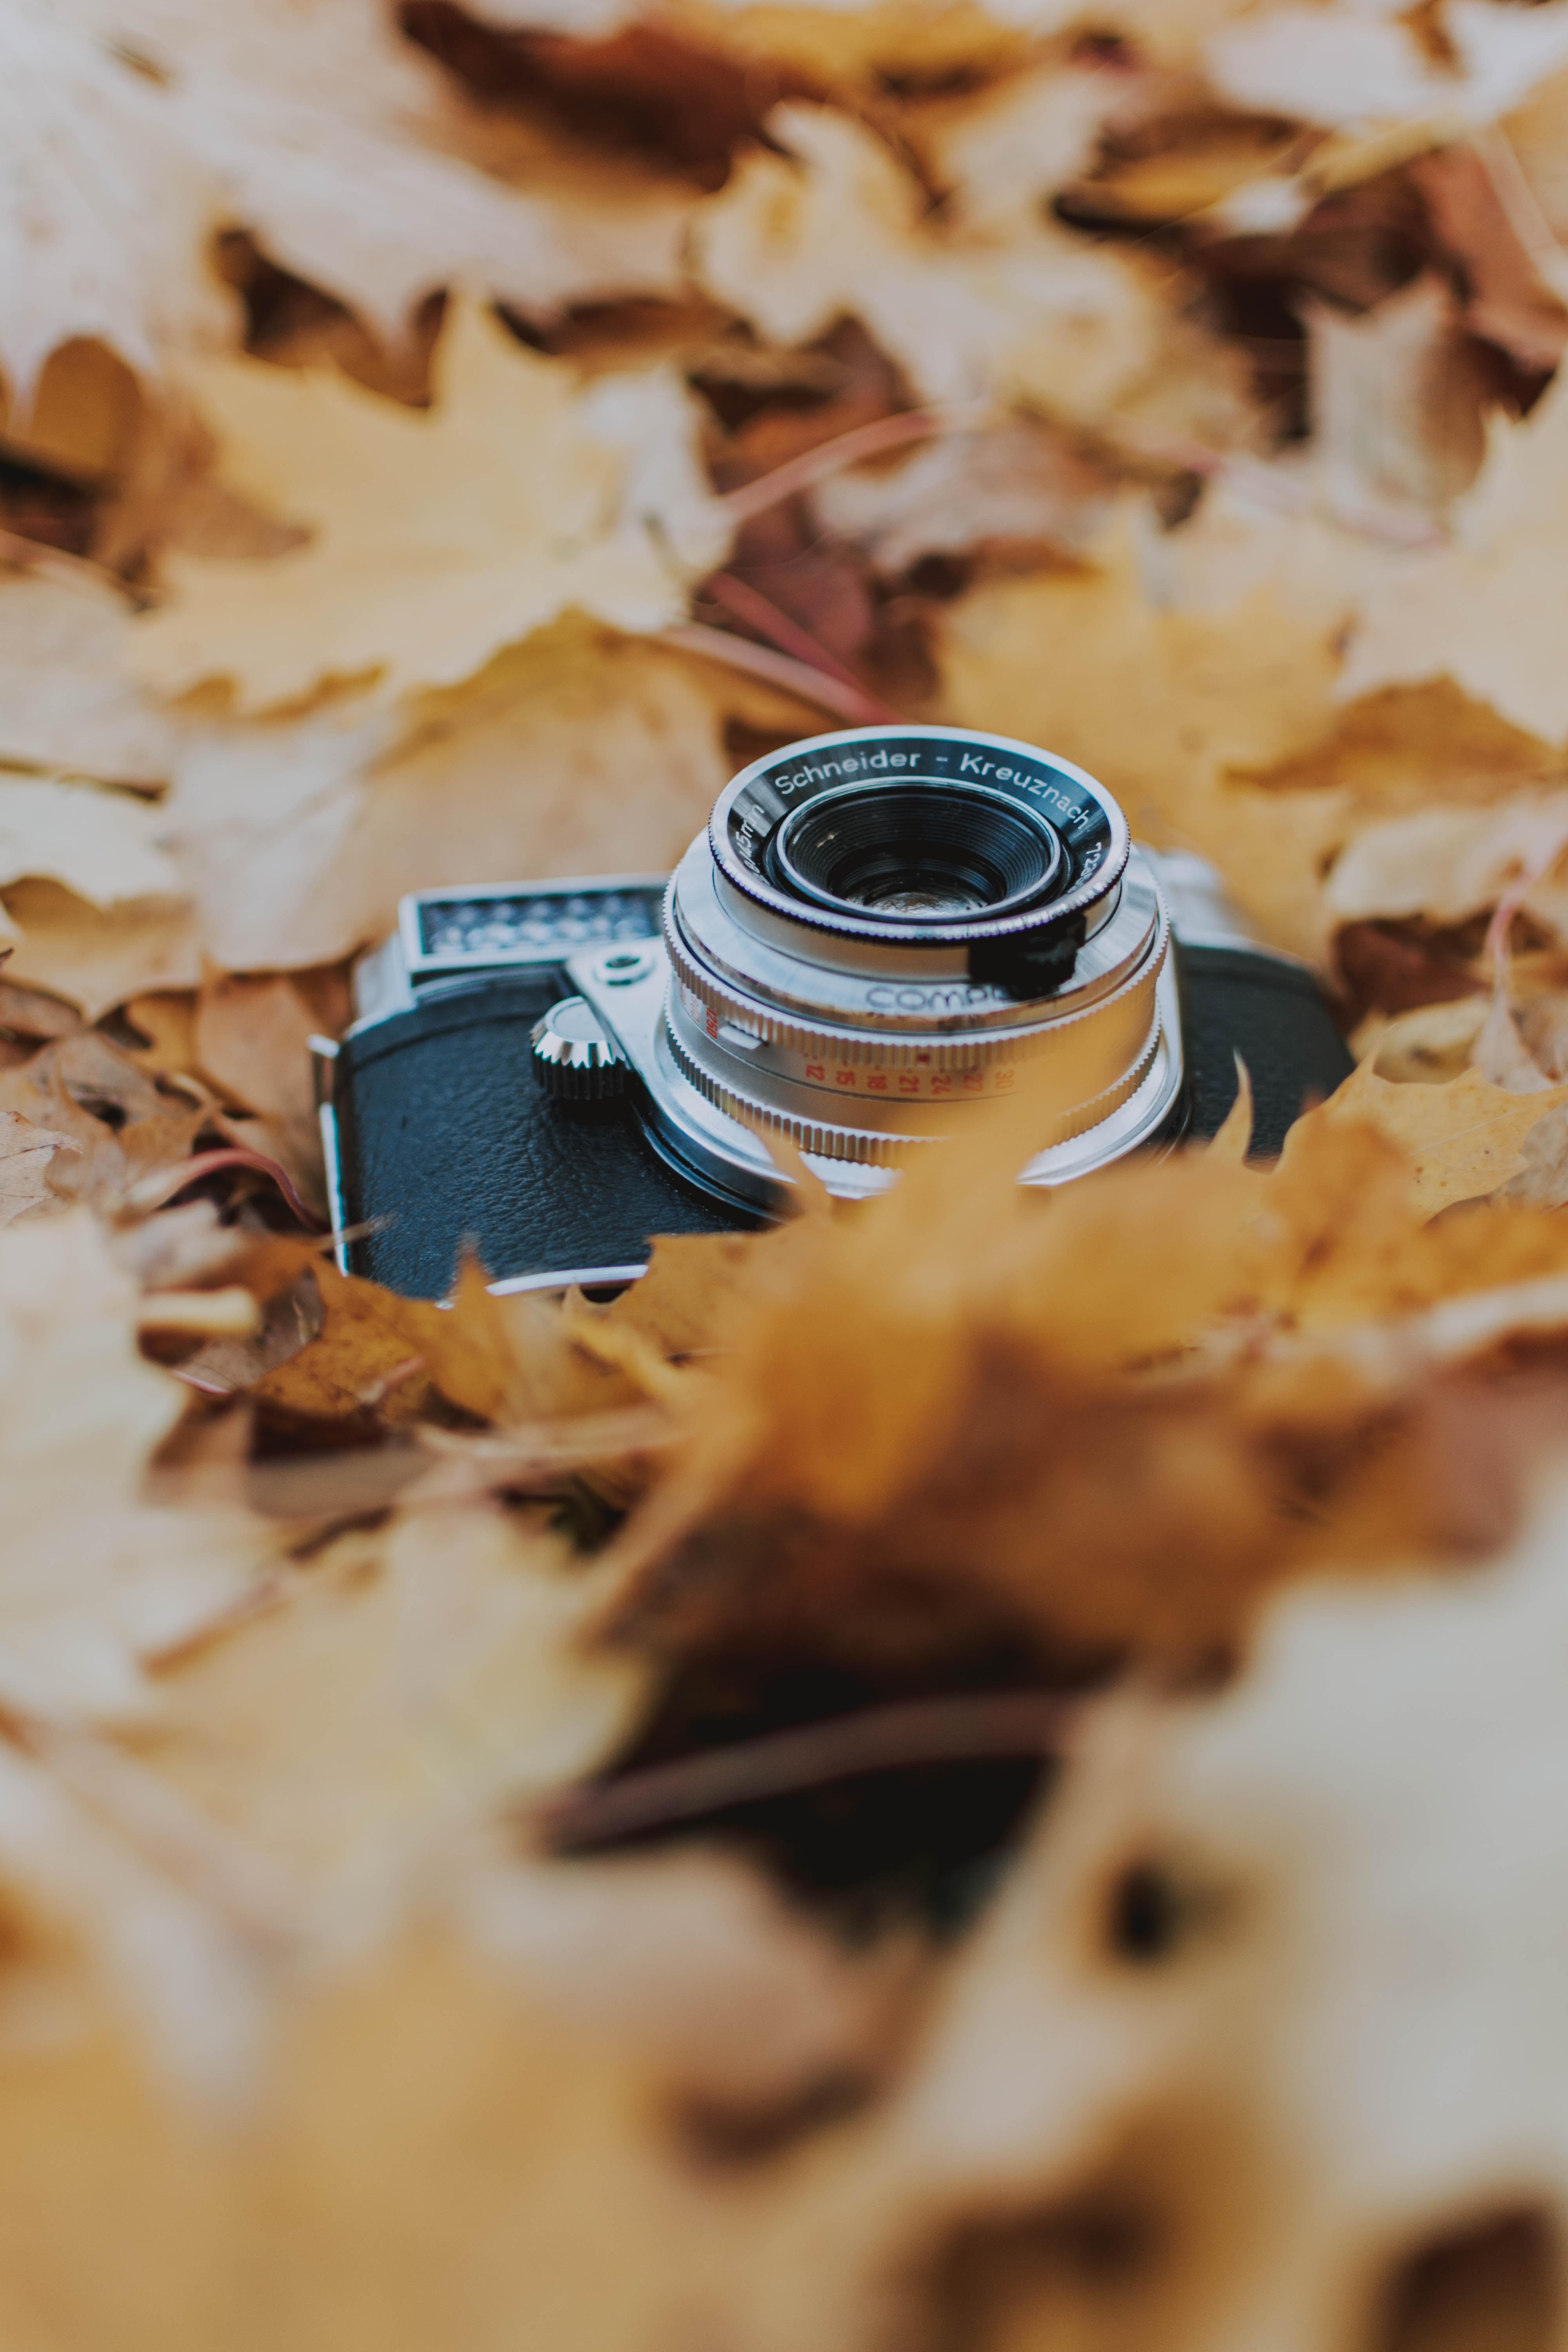 121570 download wallpaper Technologies, Technology, Camera, Leaves, Foliage, Dry, Autumn screensavers and pictures for free